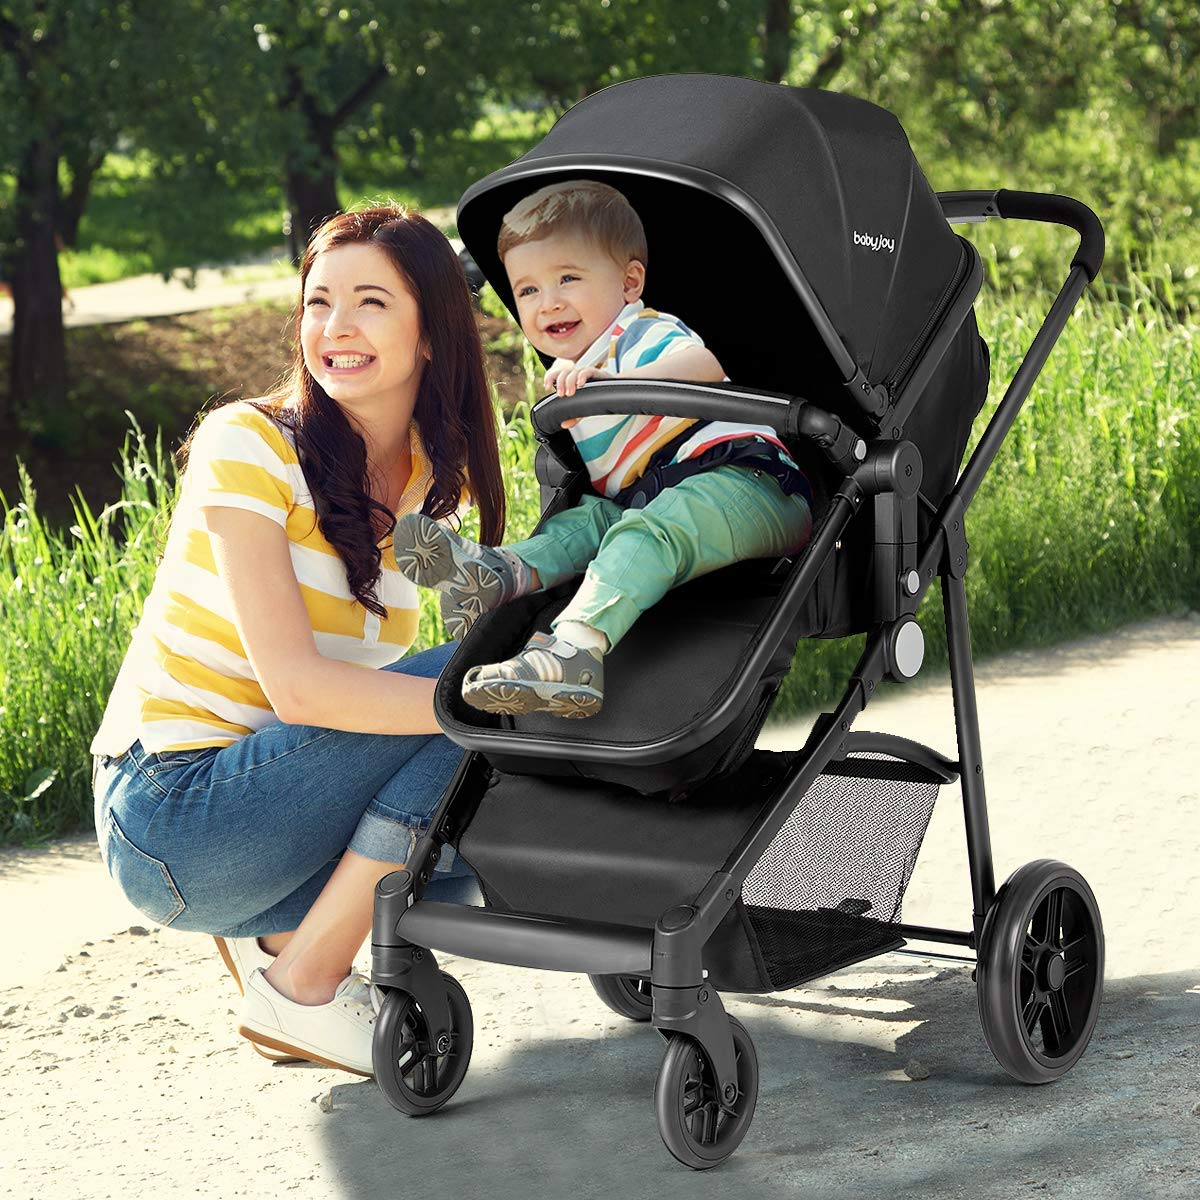 BABY JOY Baby Stroller, 2 in 1 Convertible Carriage Bassinet to Stroller, Pushchair with Foot Cover, Cup Holder, Large Storage Space, Wheels Suspension, 5-Point Harness, Deluxe Black by BABY JOY (Image #4)